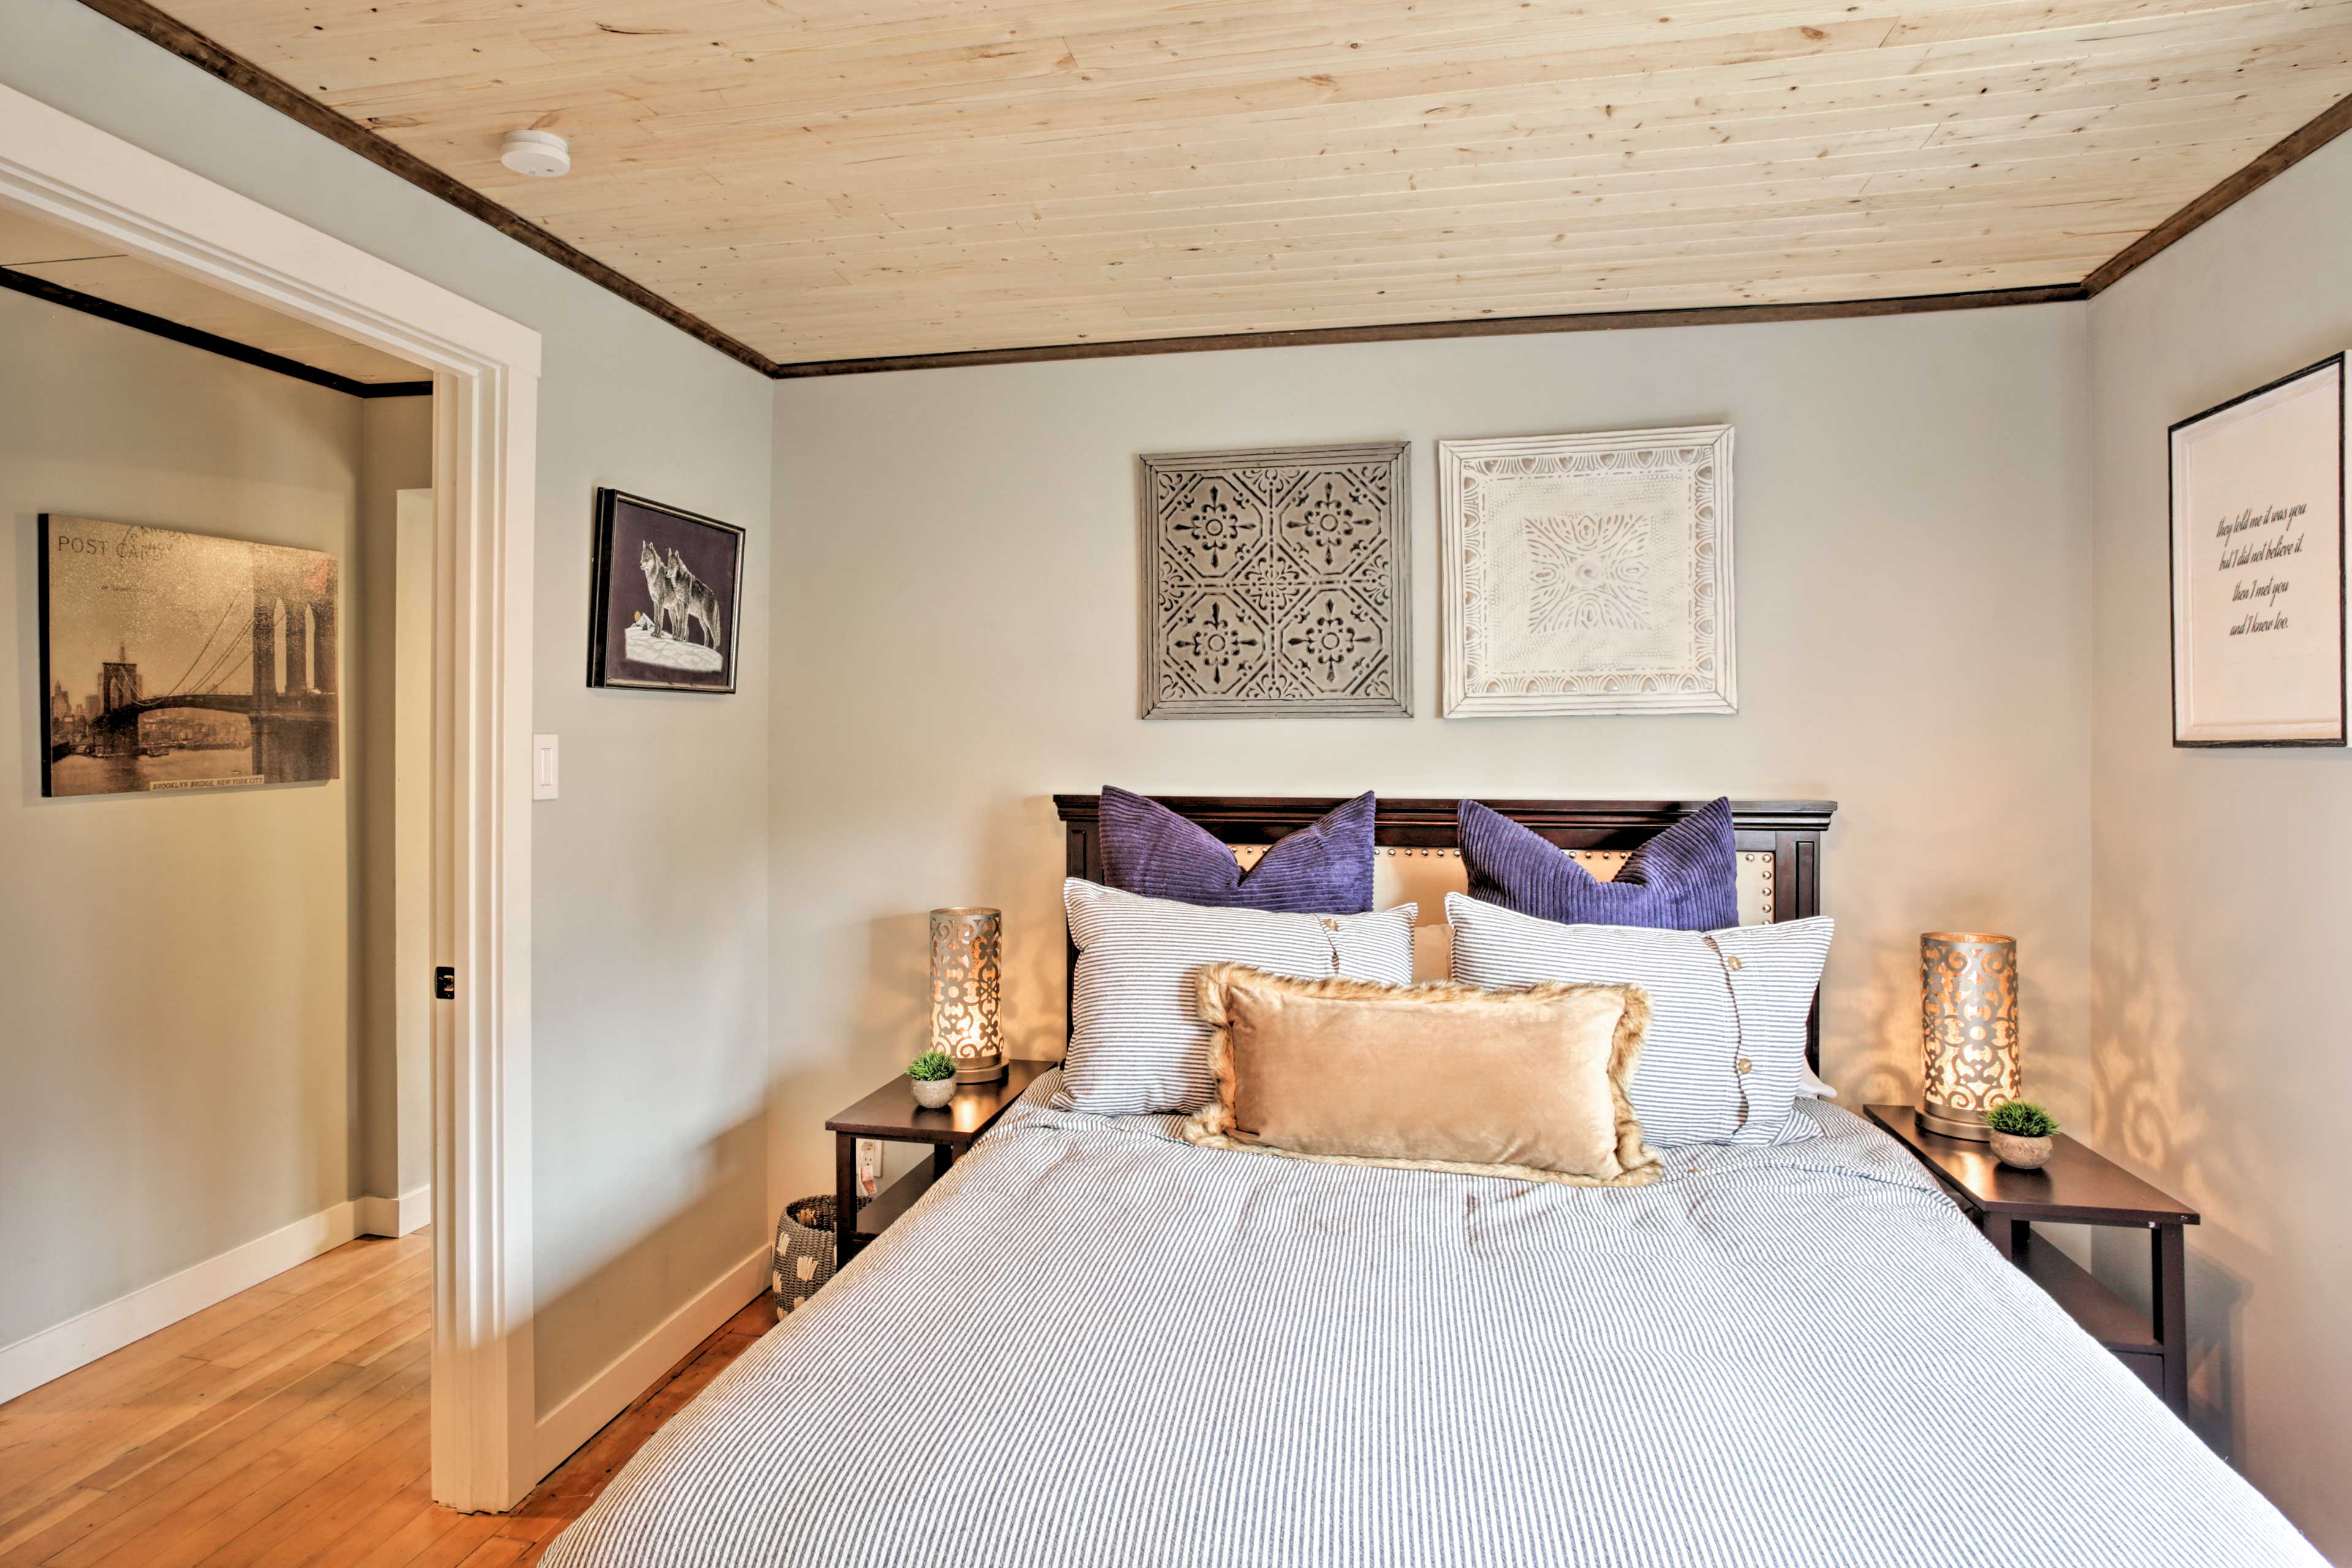 Crawl into this queen bed or the 2 twin beds for a restful night's sleep.